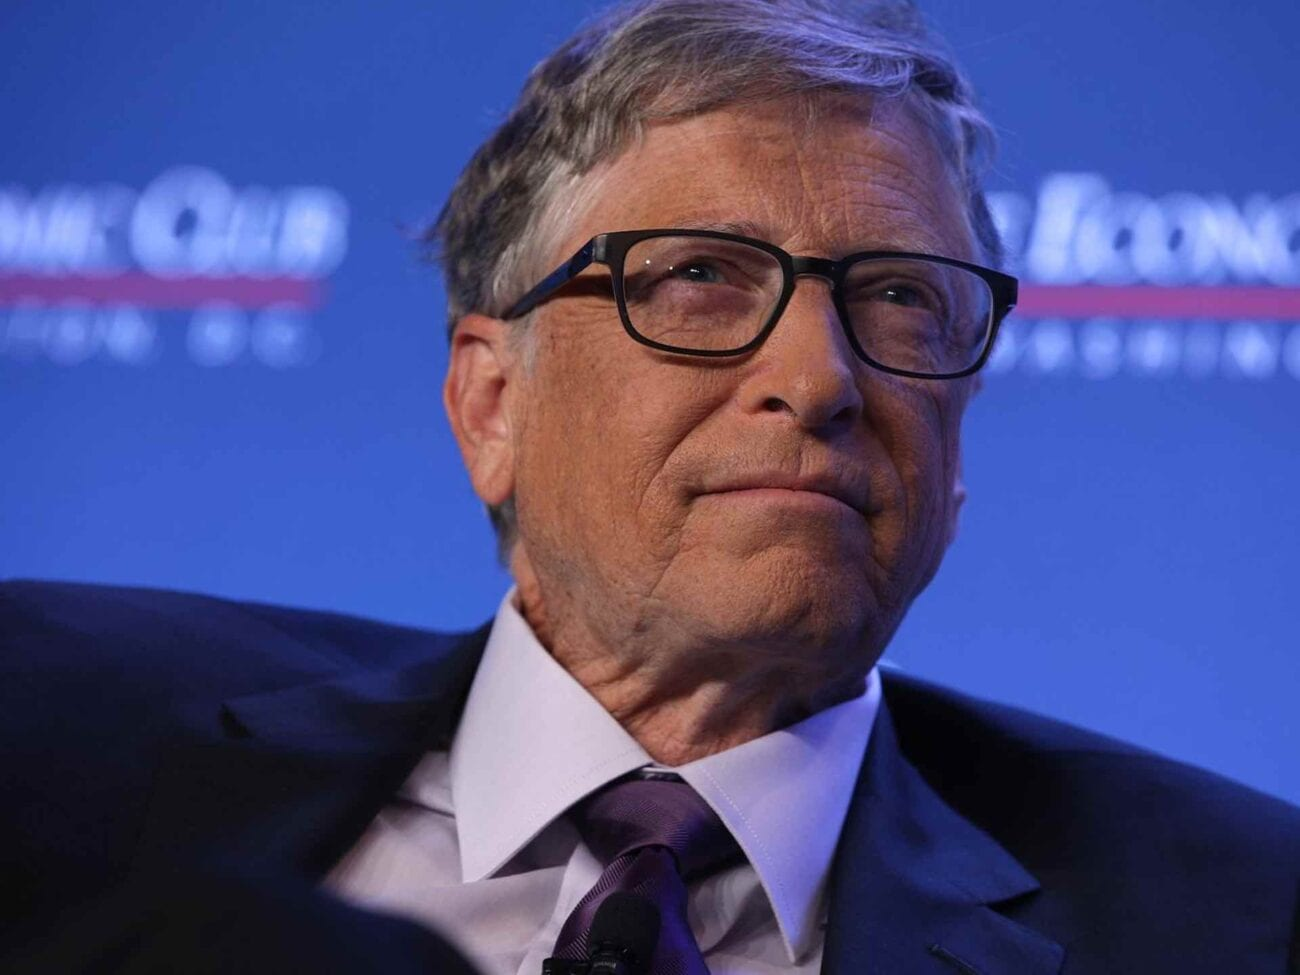 The first interaction between Jeffrey Epstein and the Bill Gates Foundation occurred in 2011. Here's everything we know about the relationship.